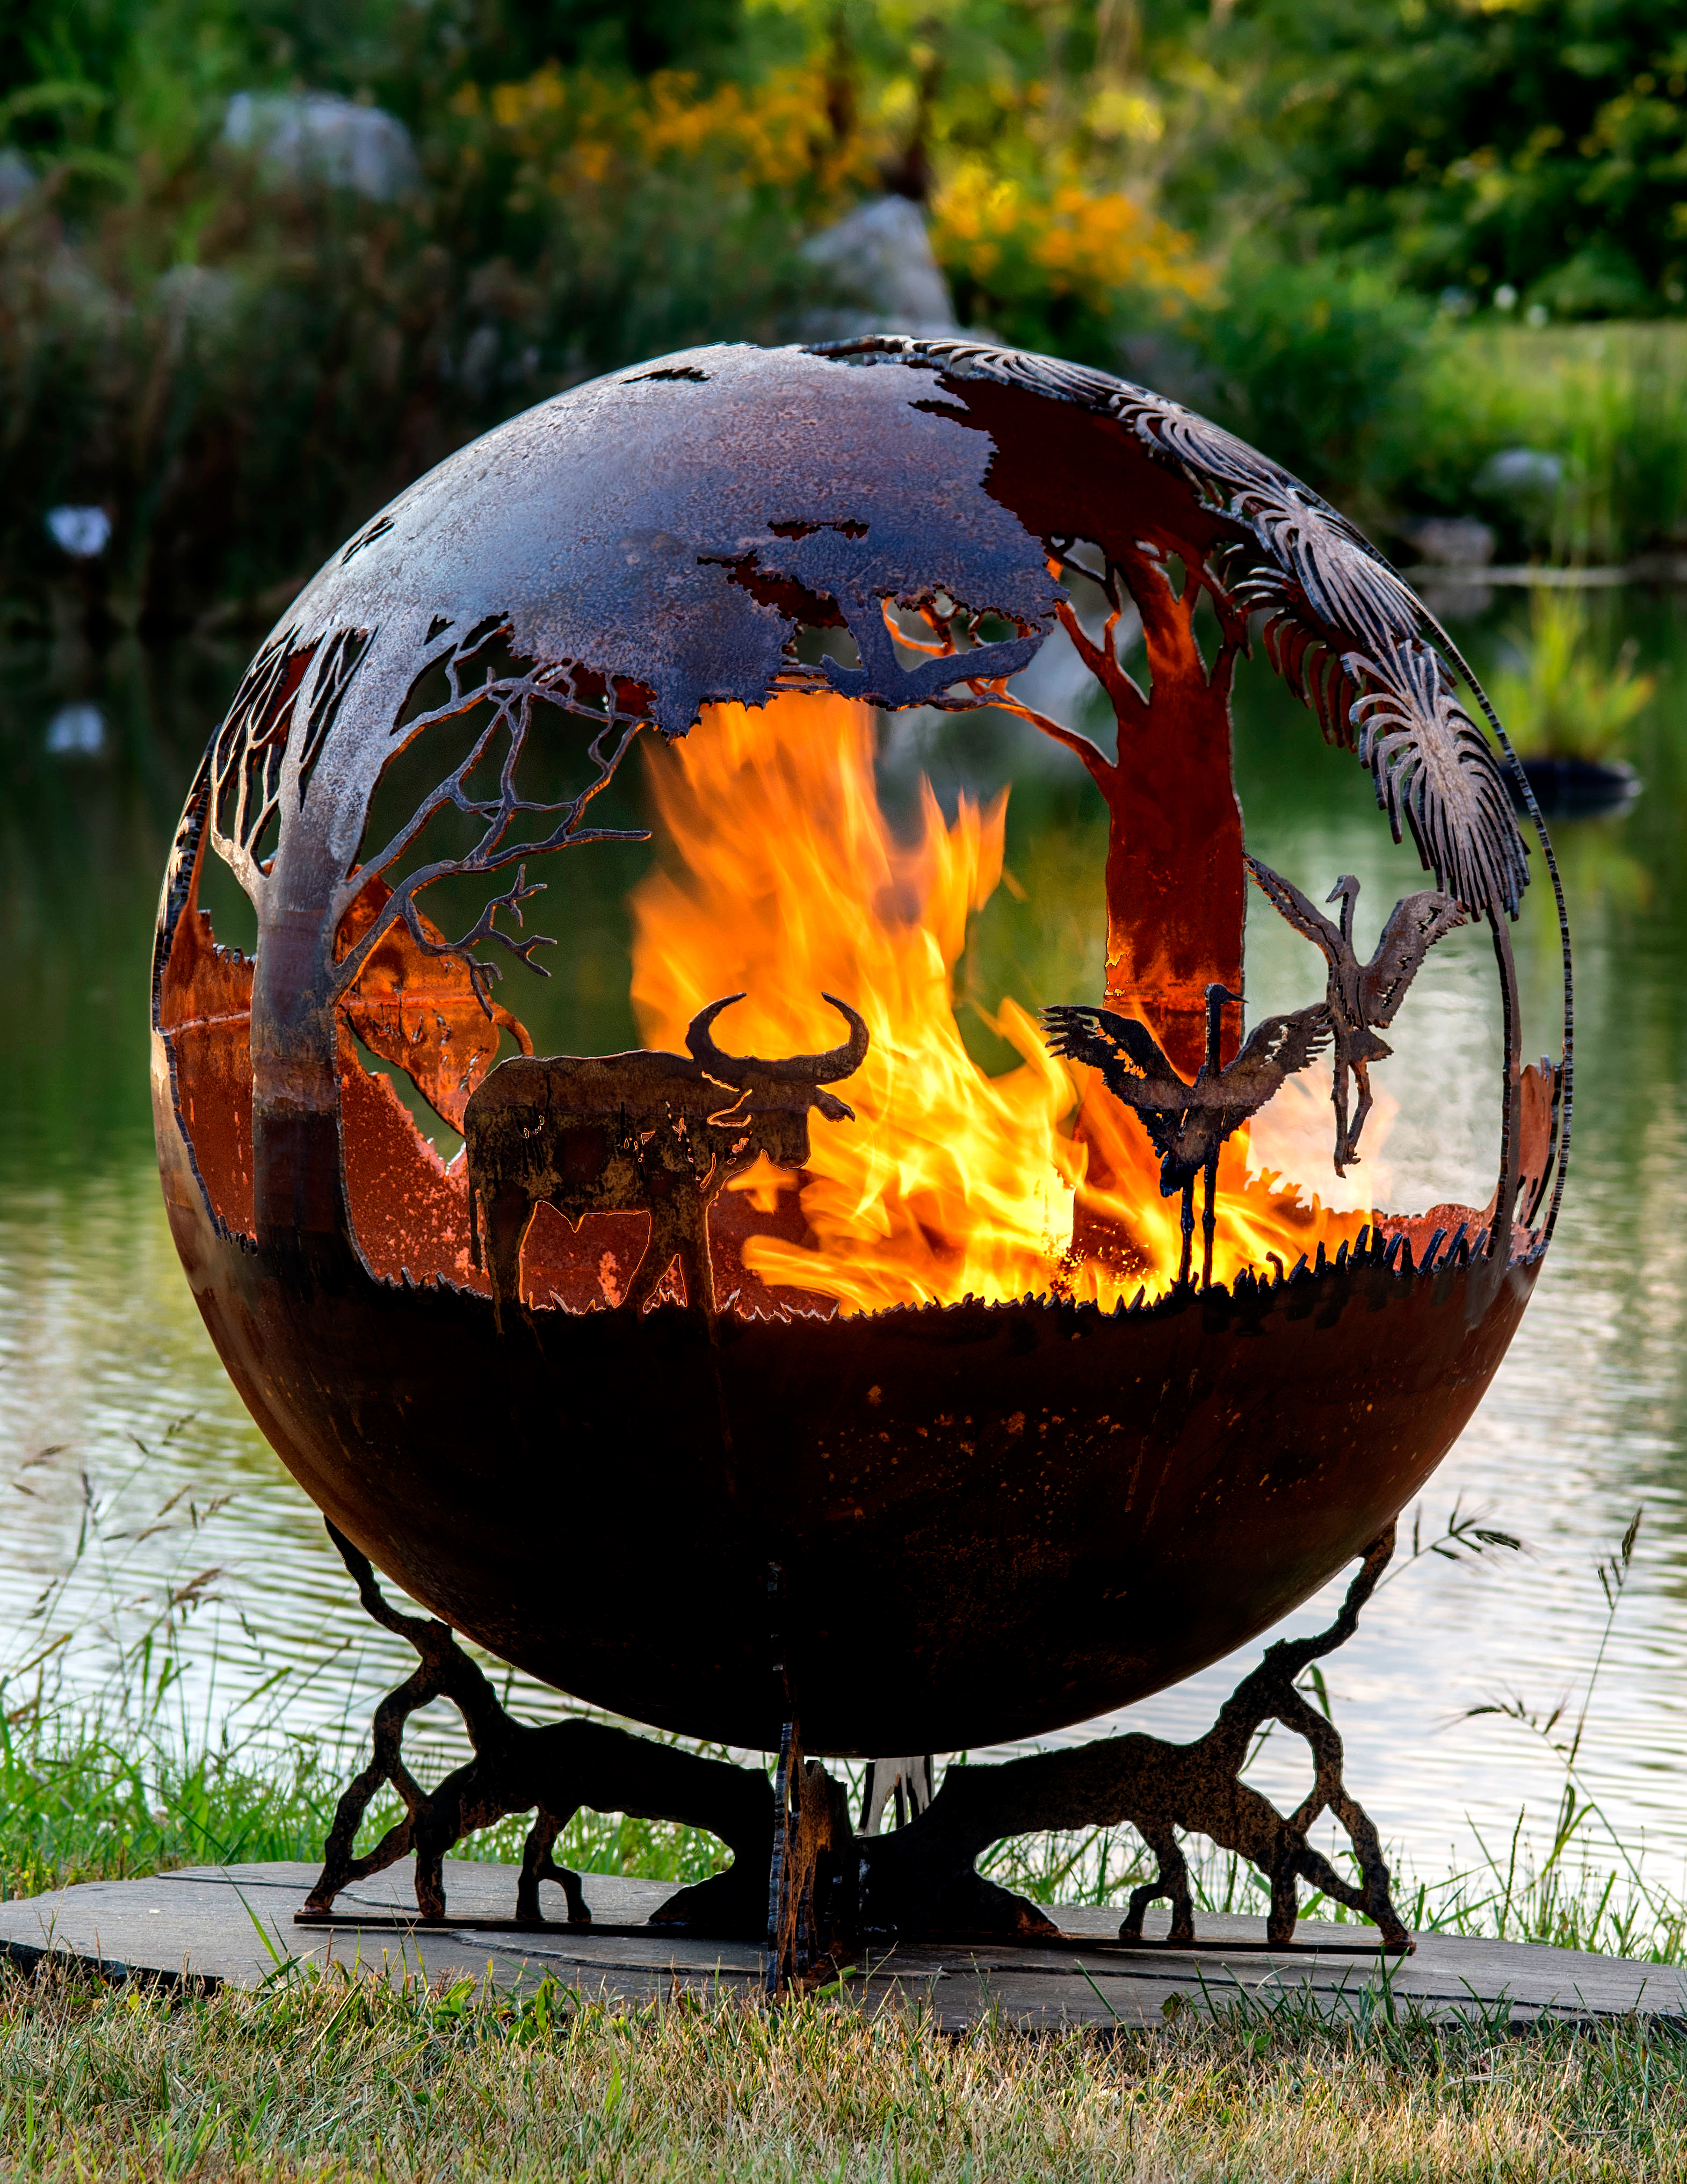 Outback Australia Fire Pit Sphere The Gallery